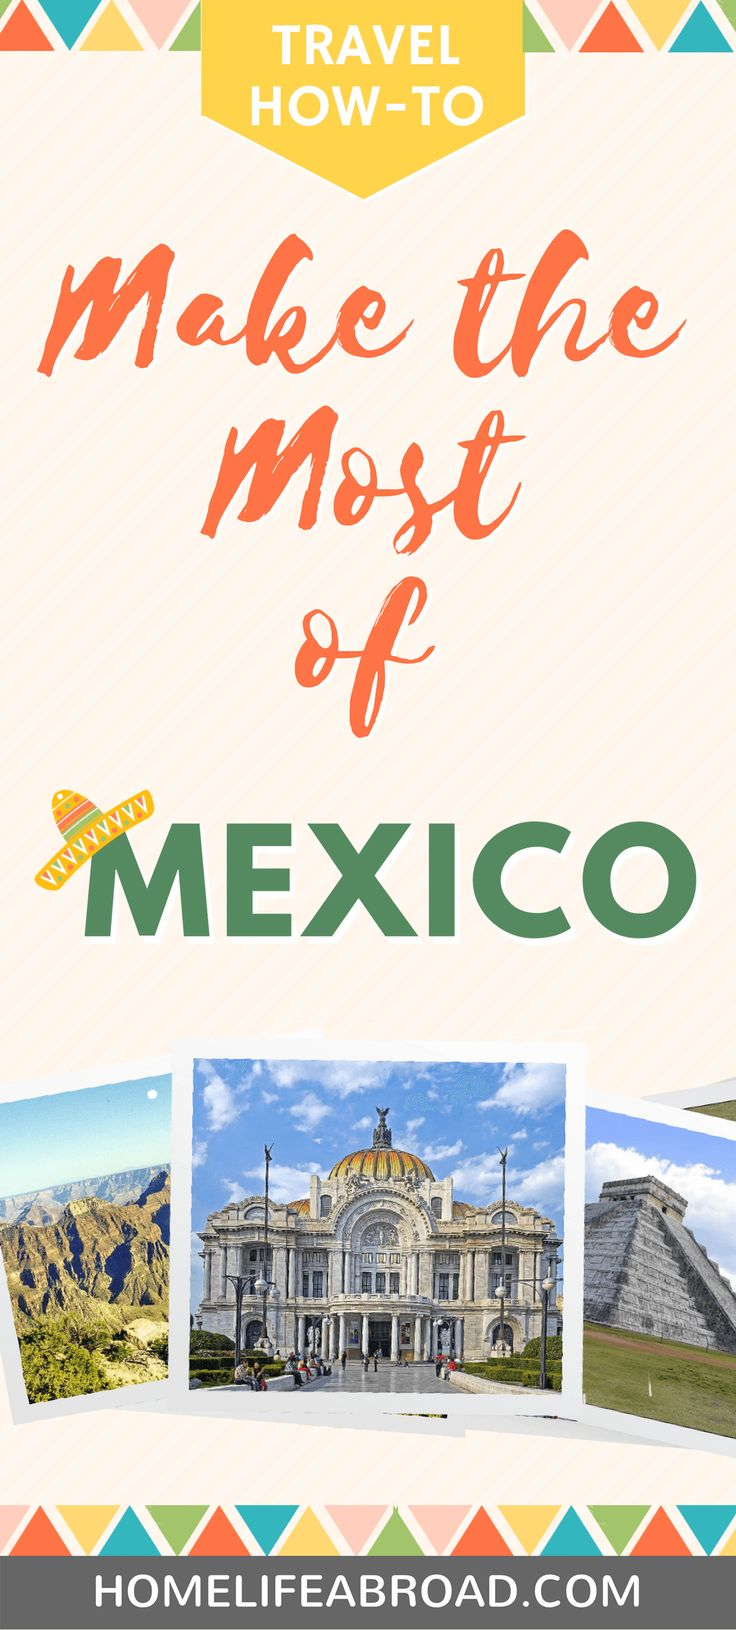 Mexico is so much more than a Spring Break in Cancun. If you're planning to travel there, check out 4 ways to make the most of your trip! #mexico #travel #tourism #vacation